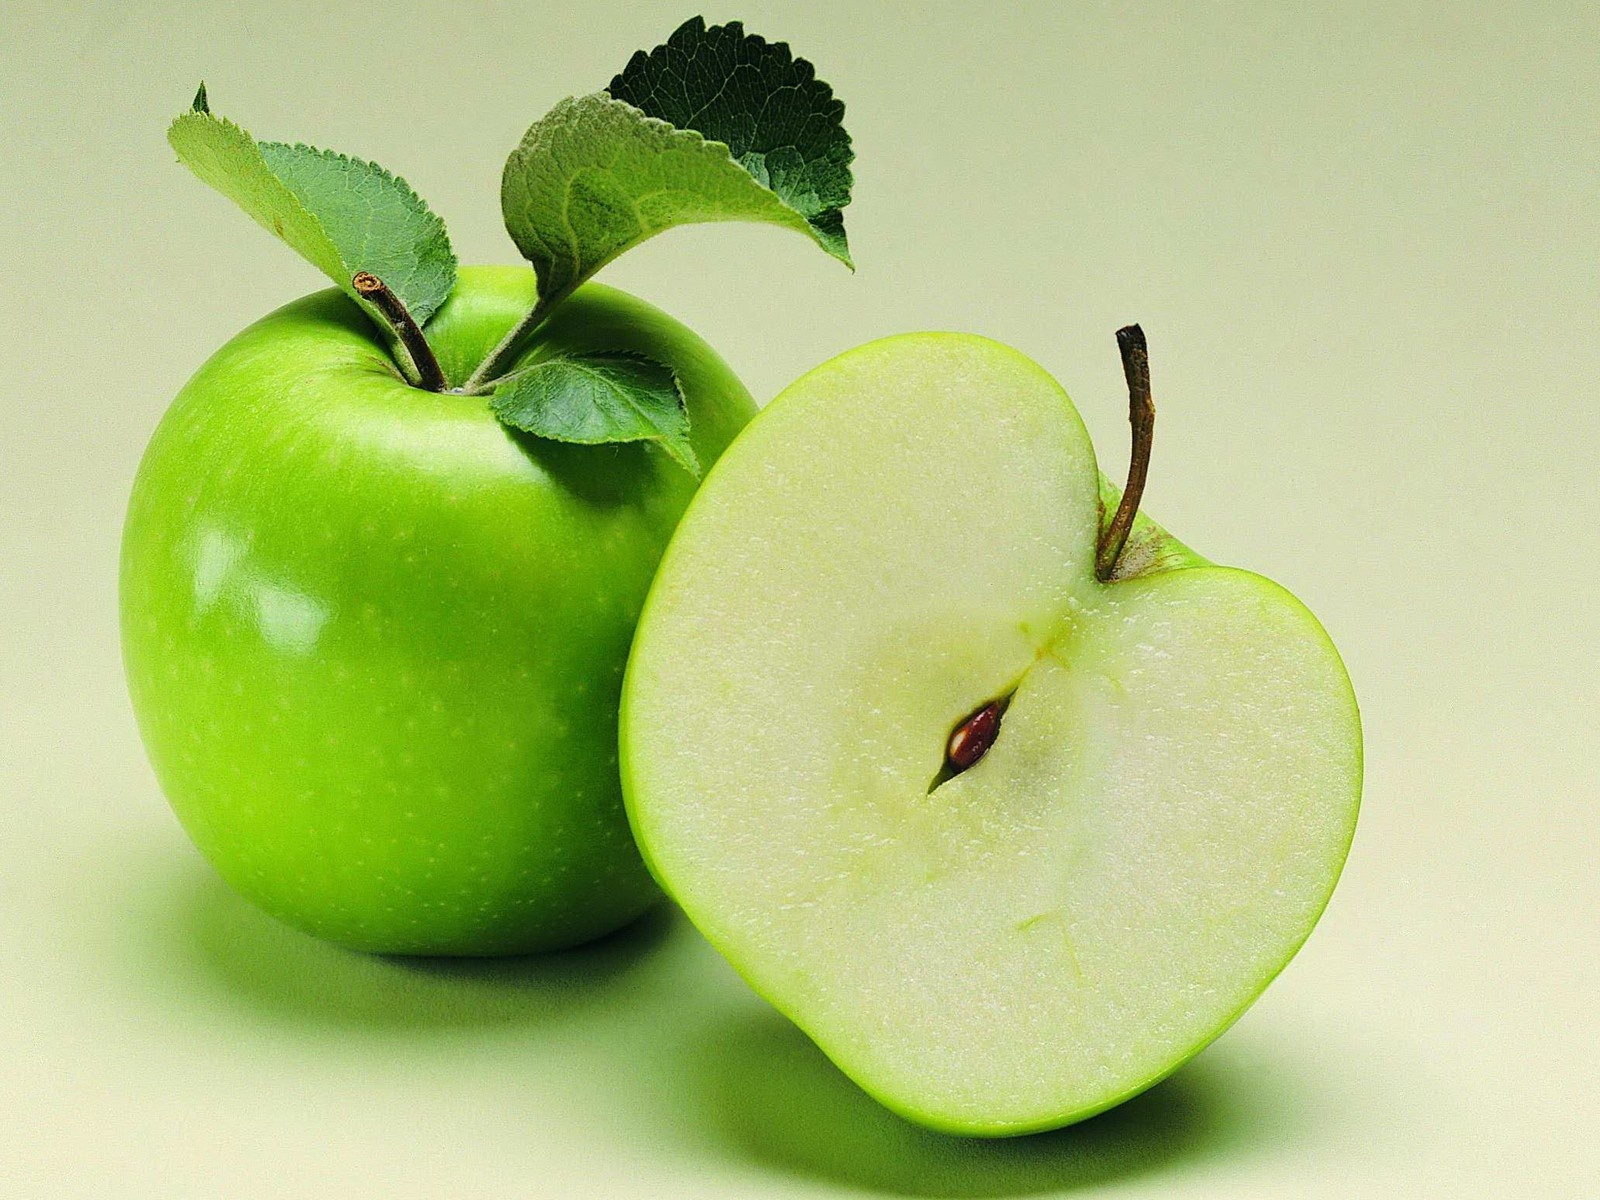 click to free download the wallpaper--Fresh Fruits Image, Green Apple Cut into Half Seconds Ago, Fresh and Impressive 1600X1200 free wallpaper download